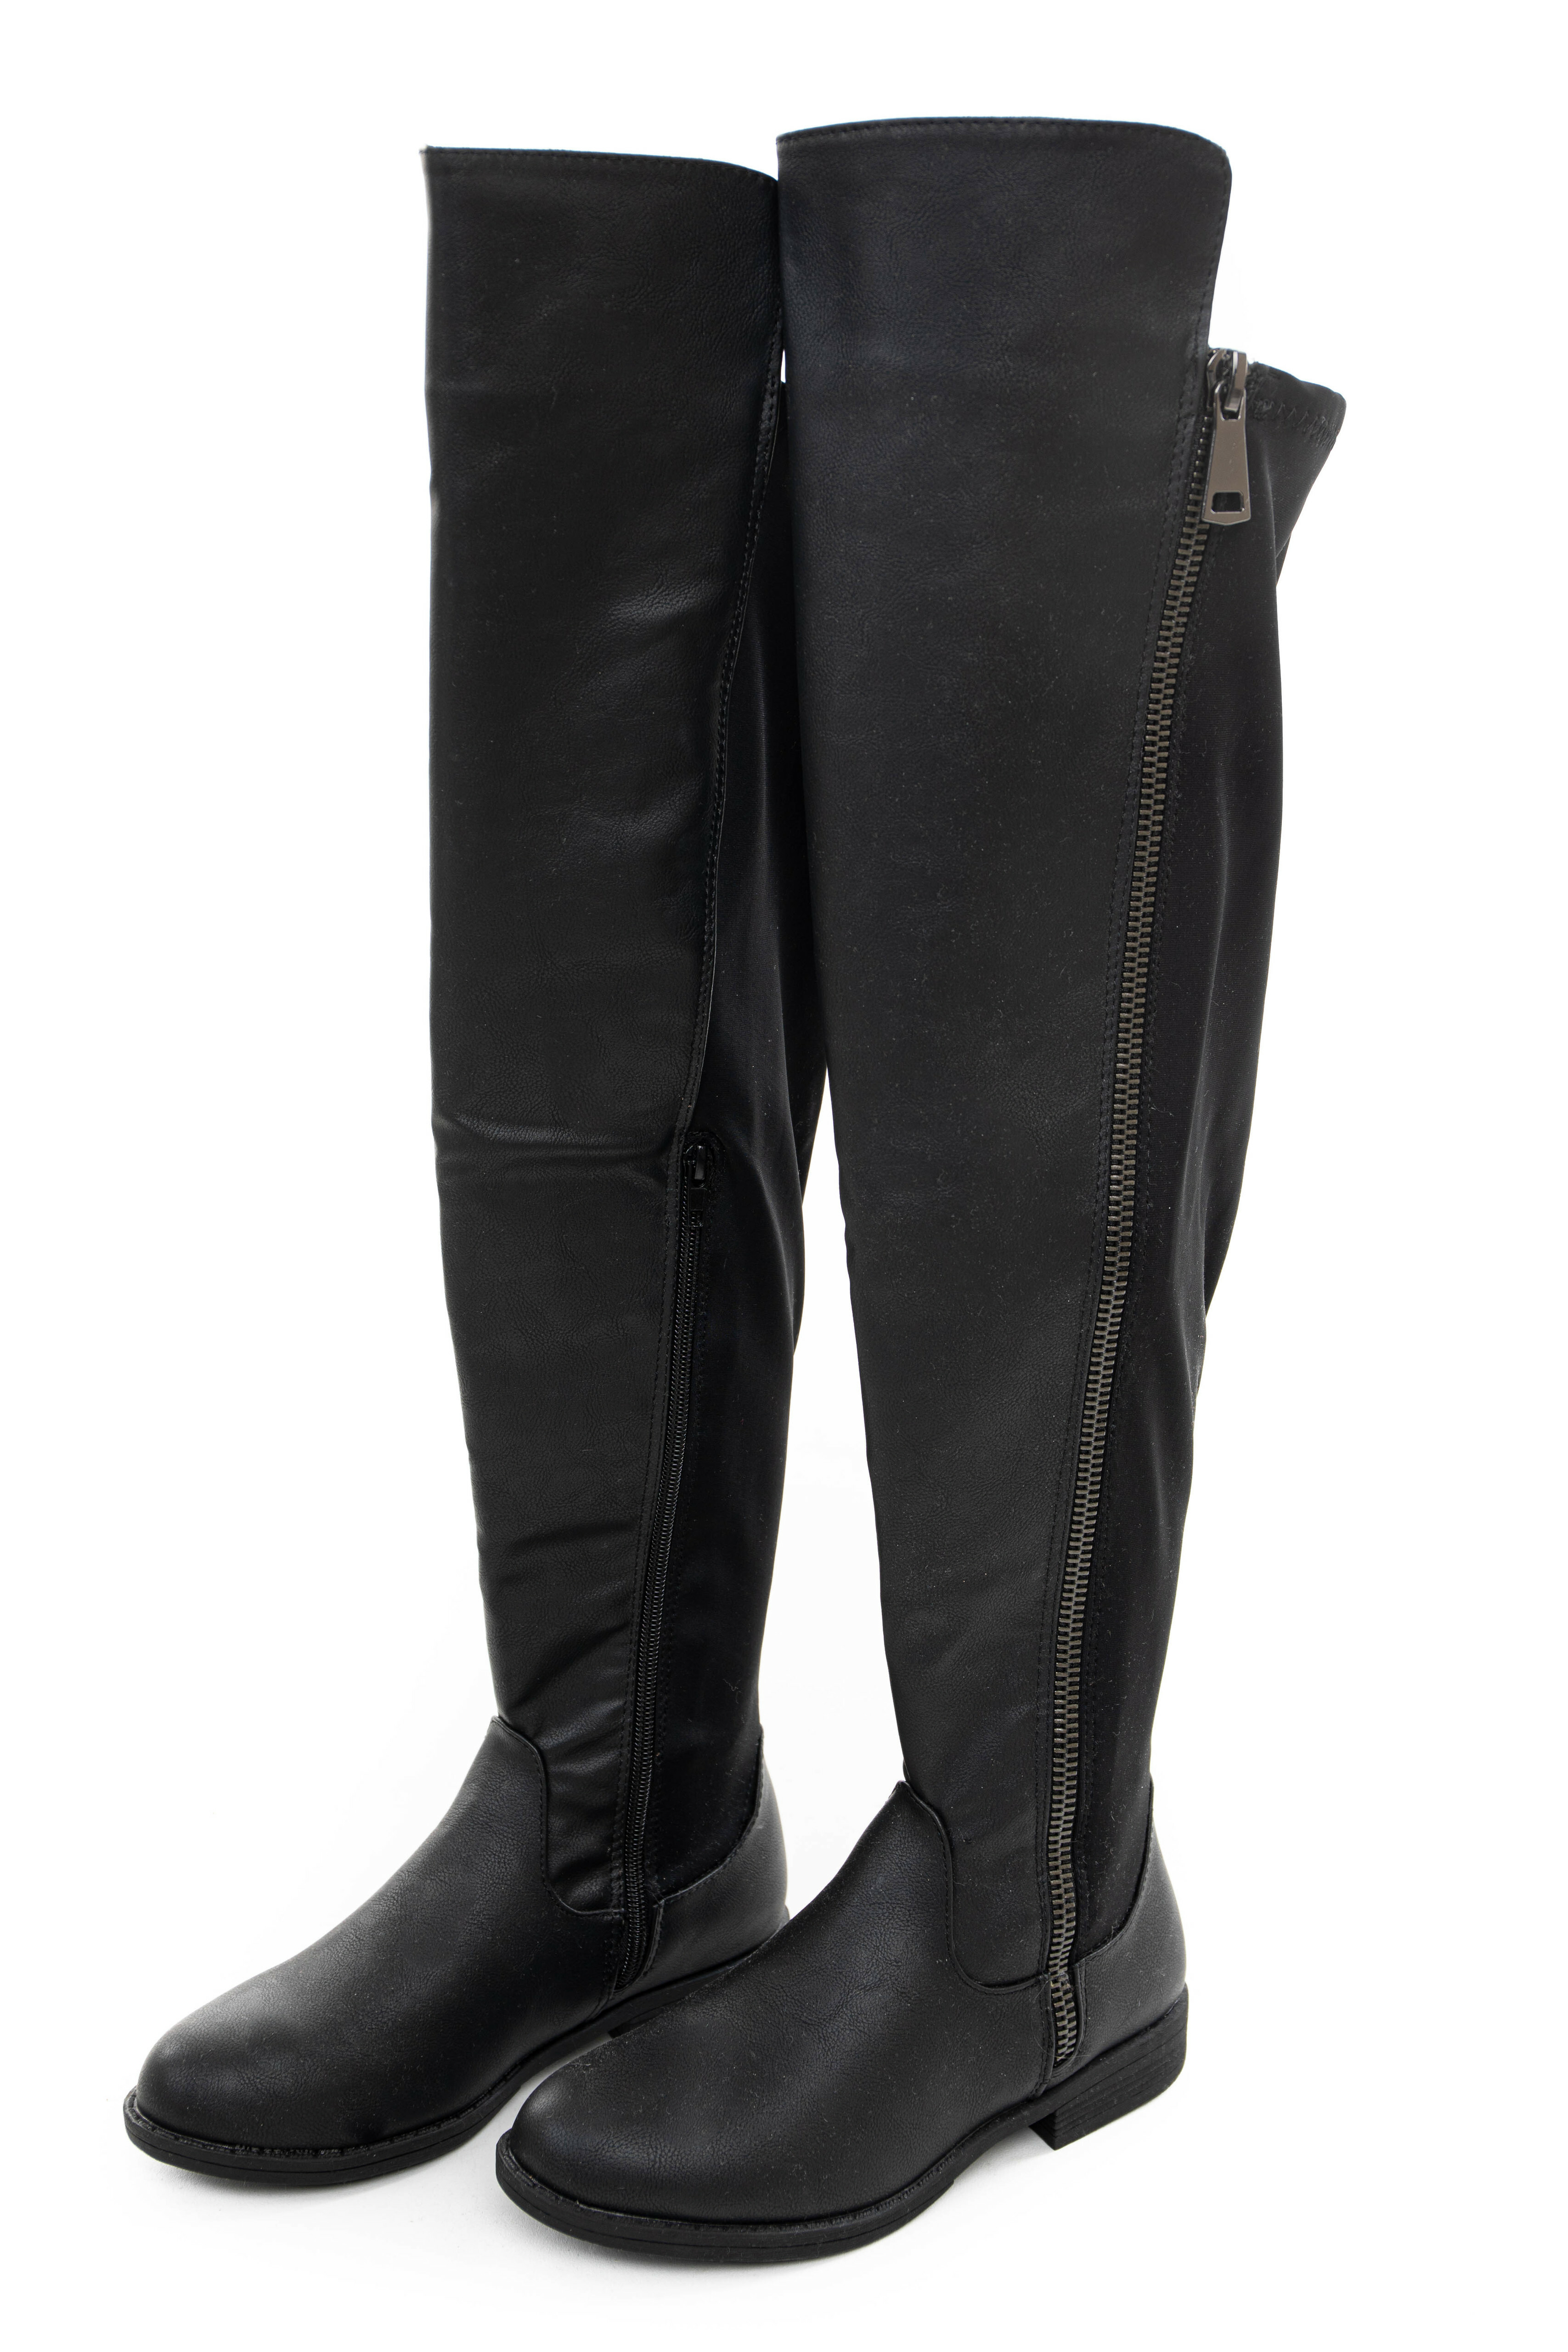 Black Faux Leather Knee High Boot with Small Heel